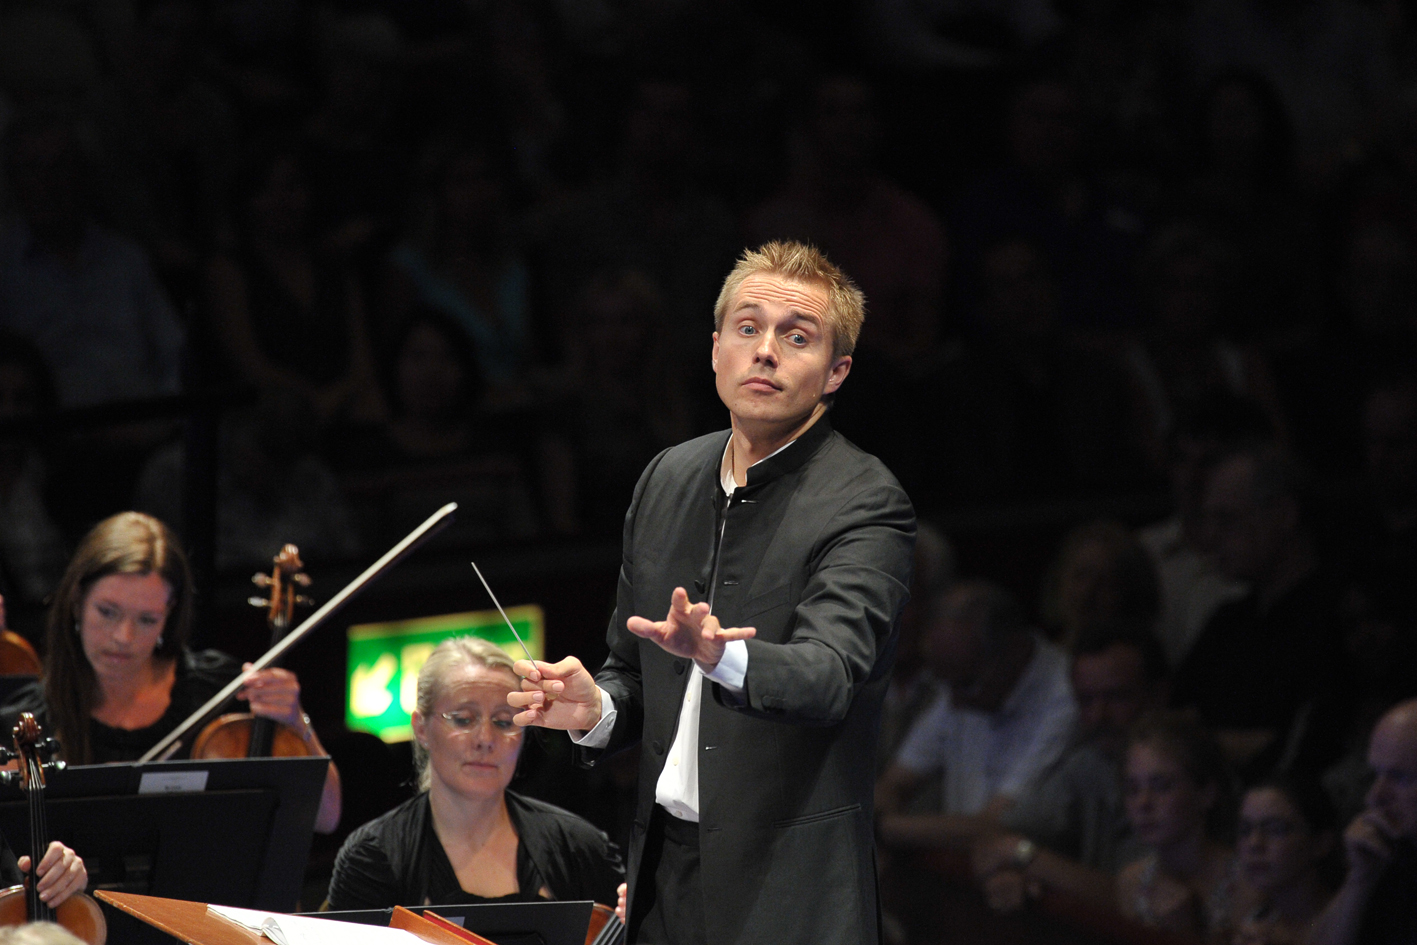 Vasily Petrenko at the 2013 Proms by Chris Christodoulou